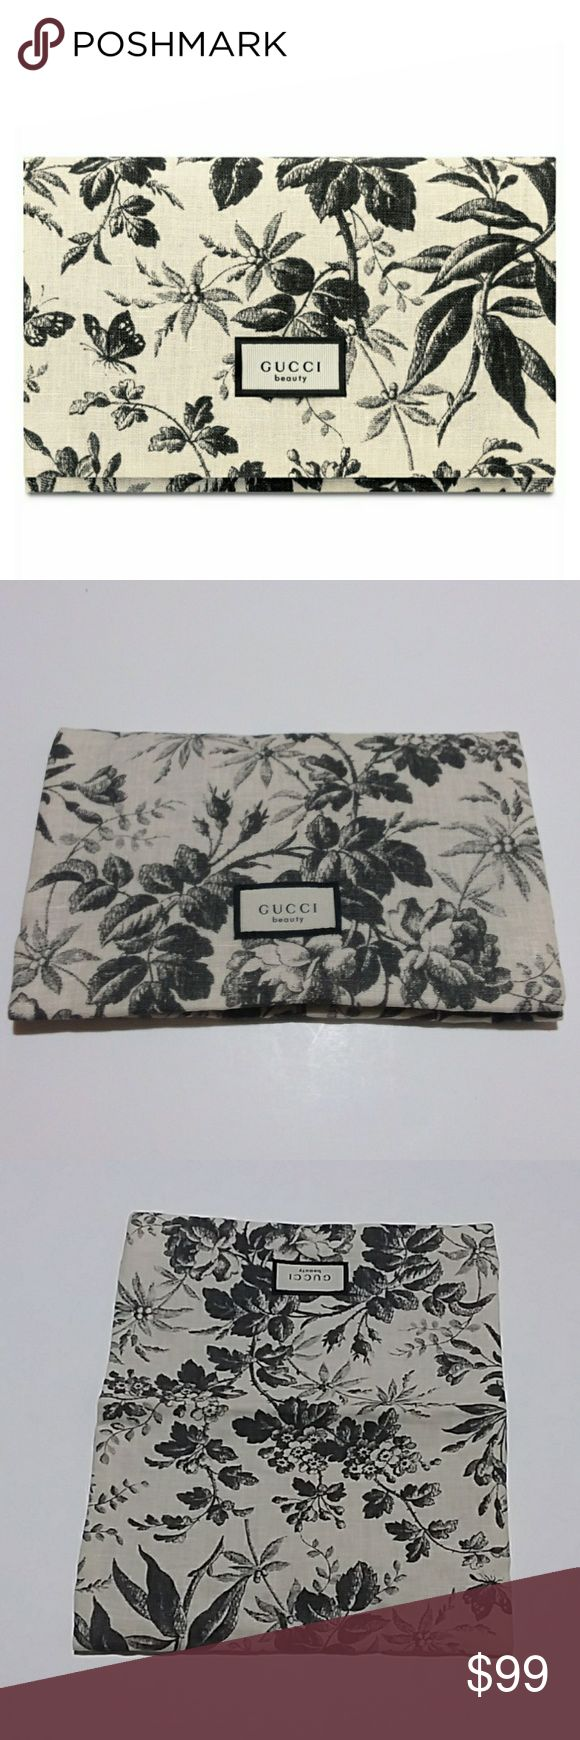 Gucci Beauty Floral Cosmetic Bag NWT Cosmetic bag